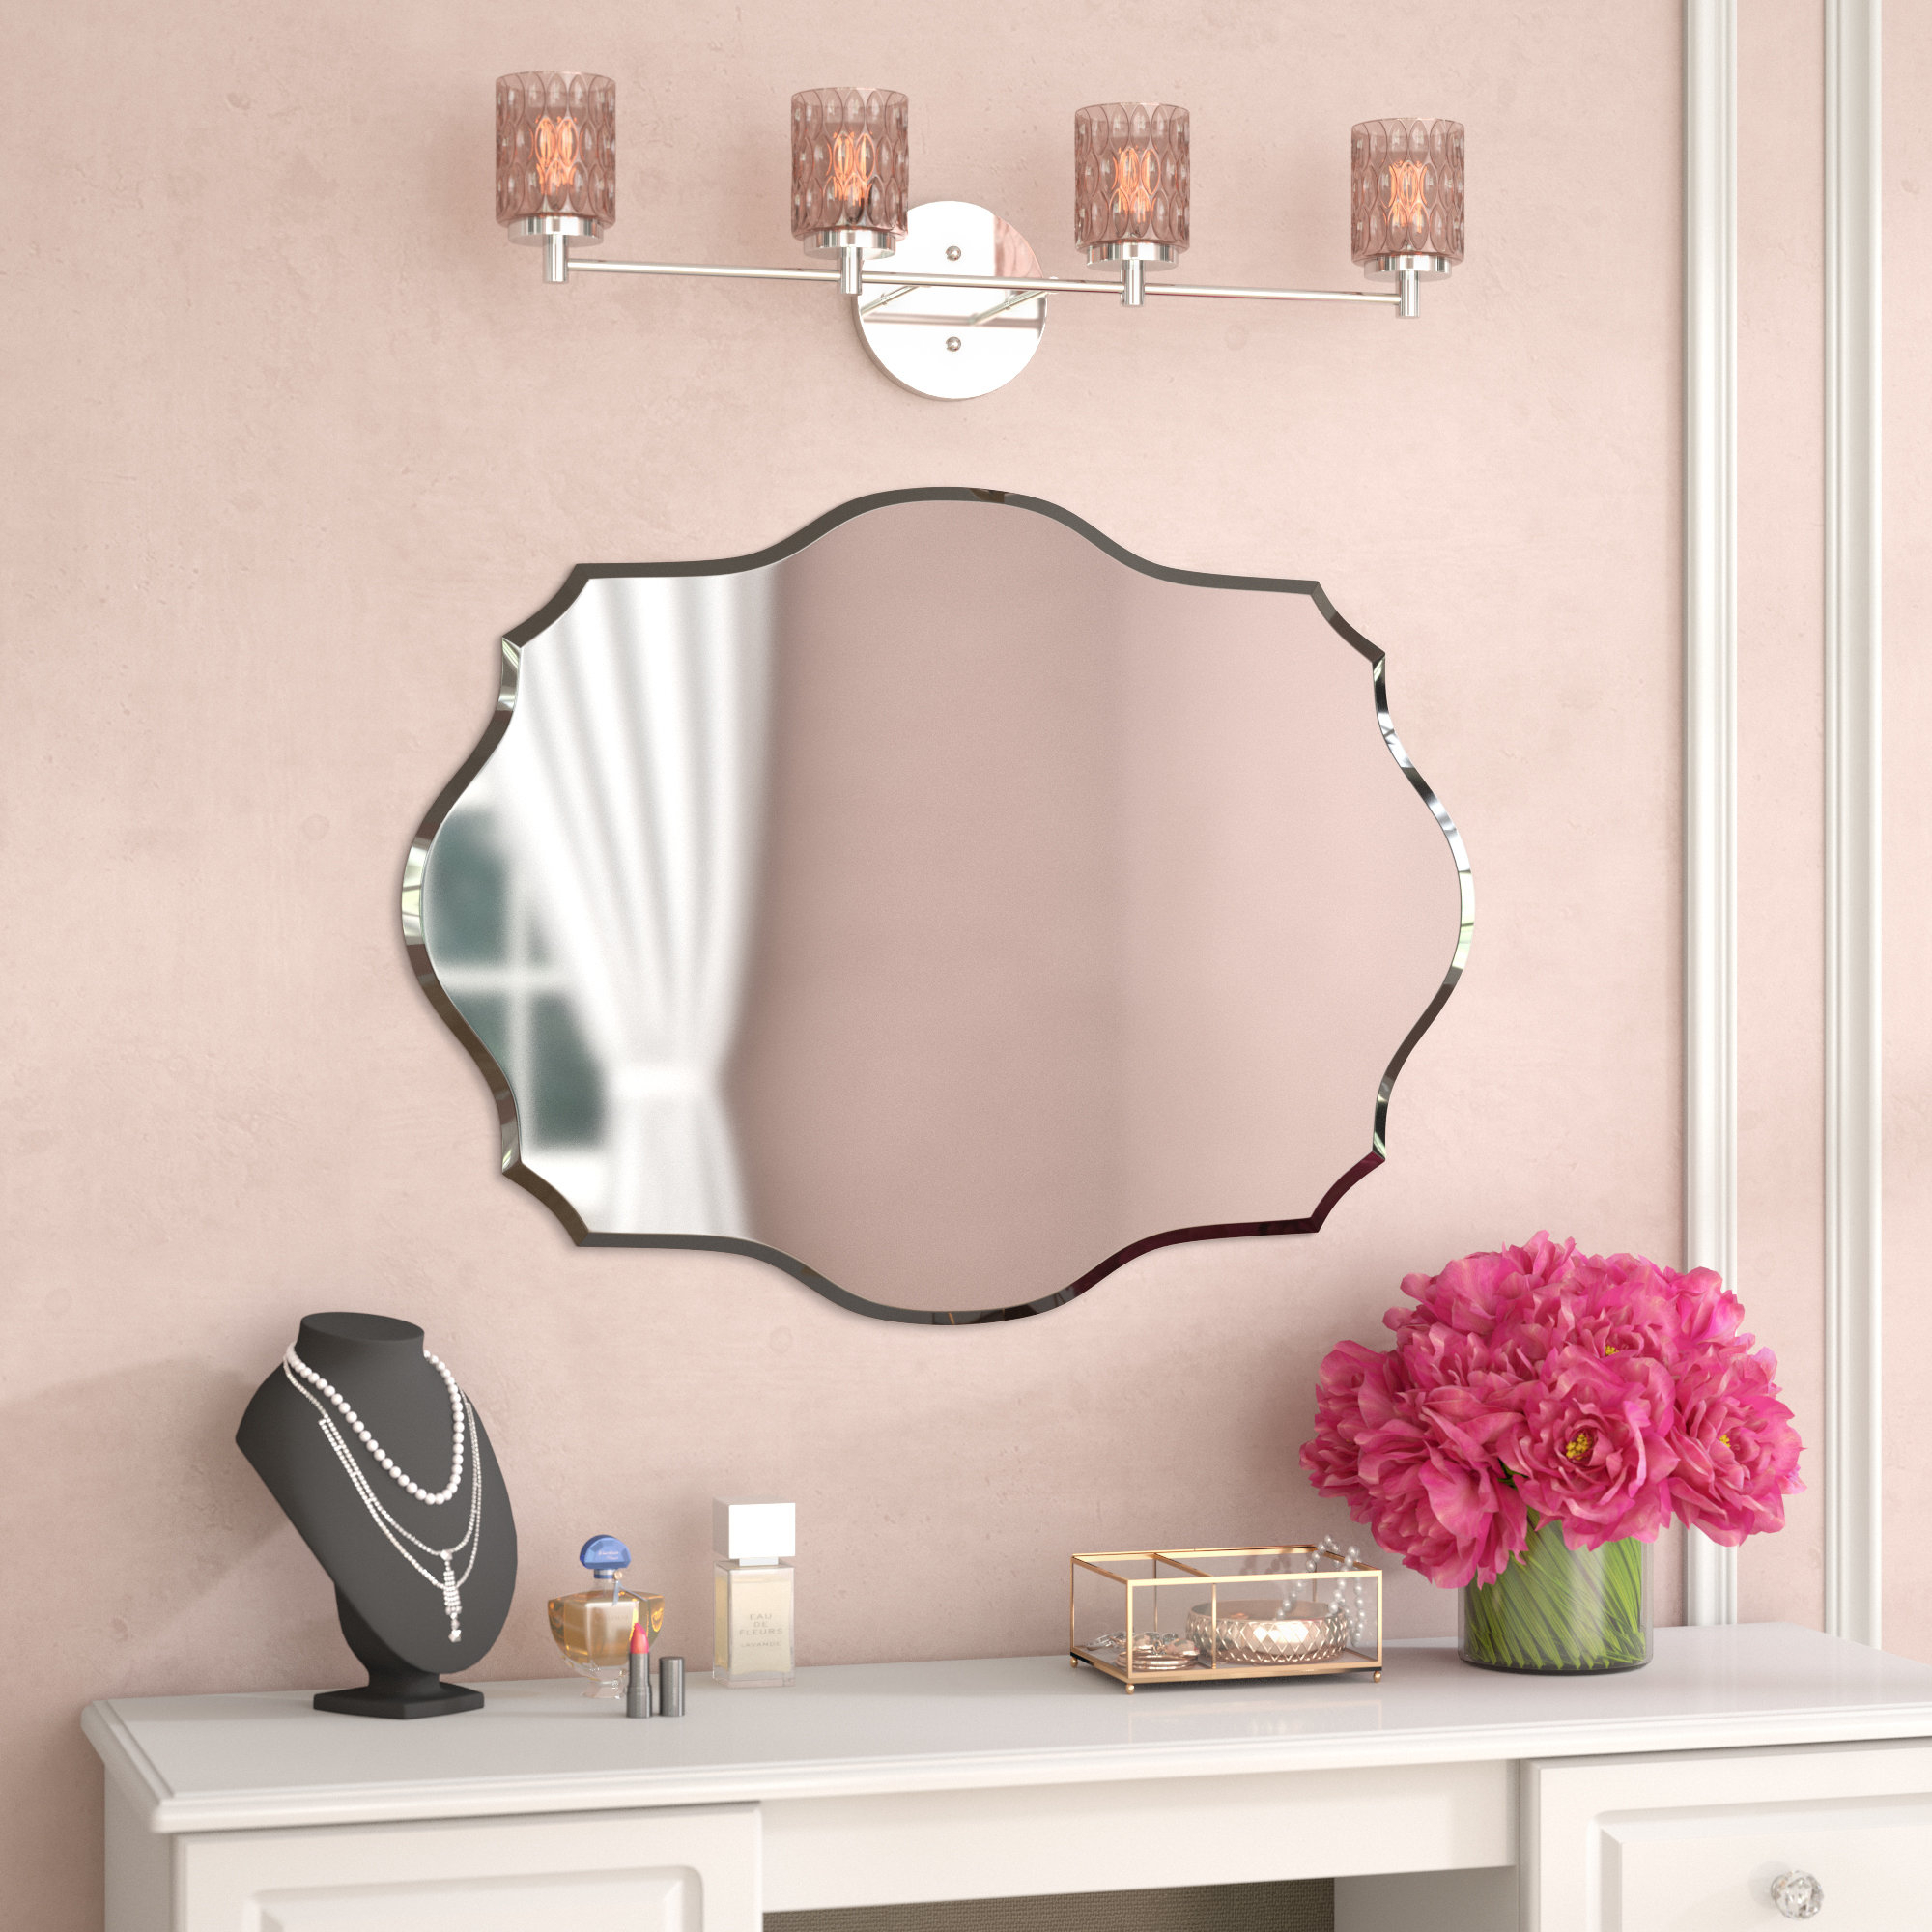 House Of Hampton Mccroy Glam Frameless Wall Mirror & Reviews Intended For Estefania Frameless Wall Mirrors (View 17 of 20)